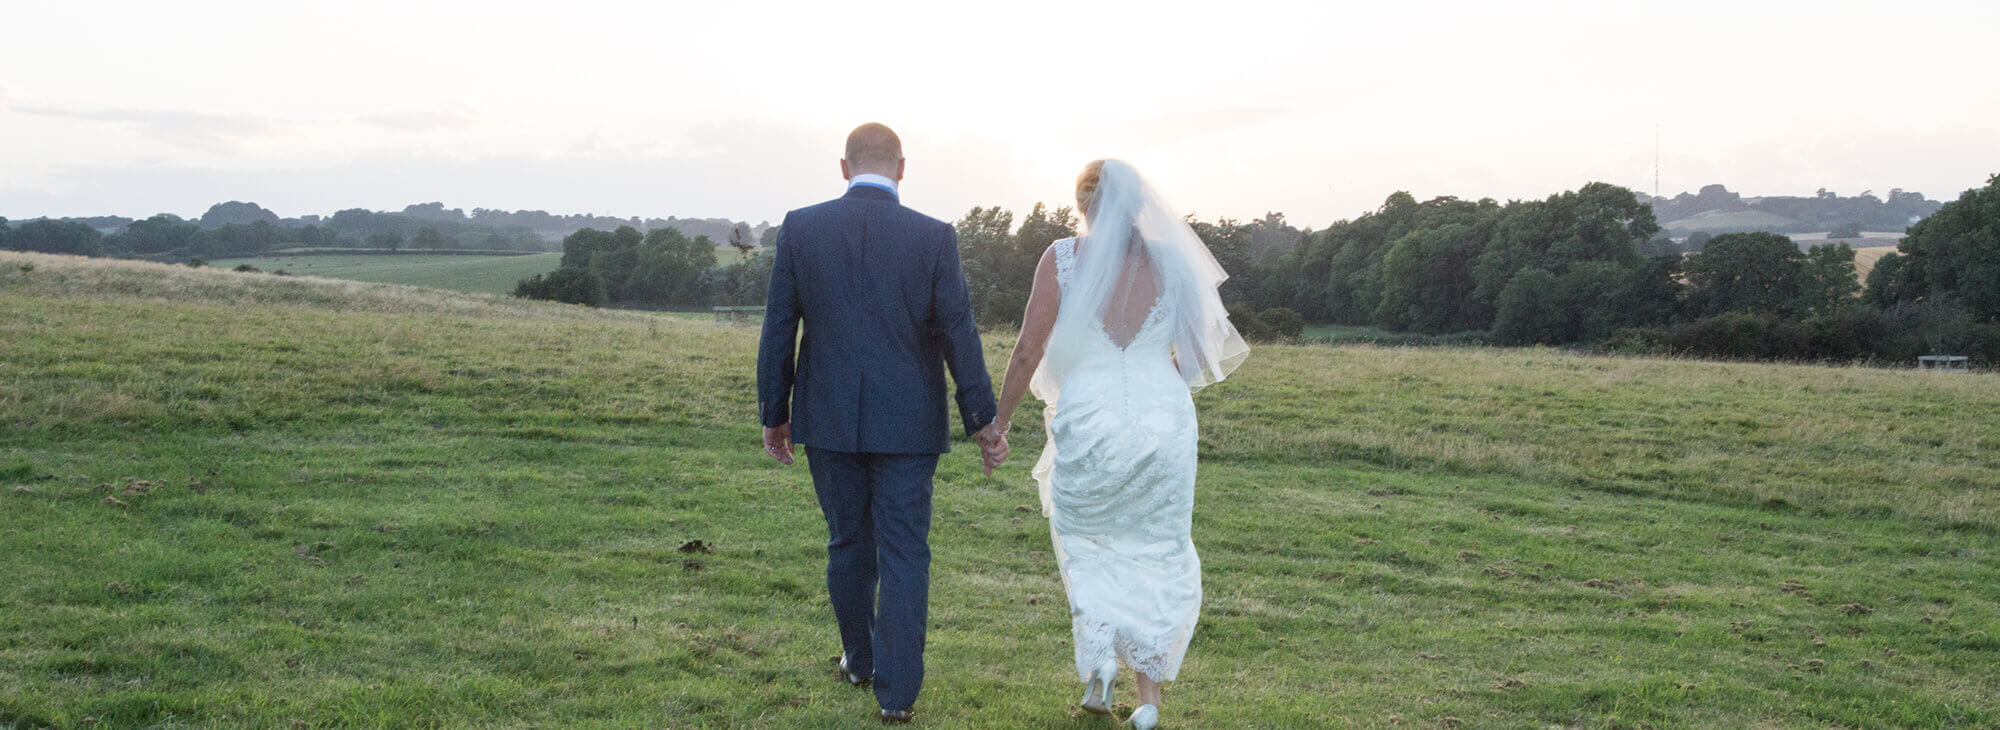 Bride and Groom walking away from the camera in the Northamptonshire countryside